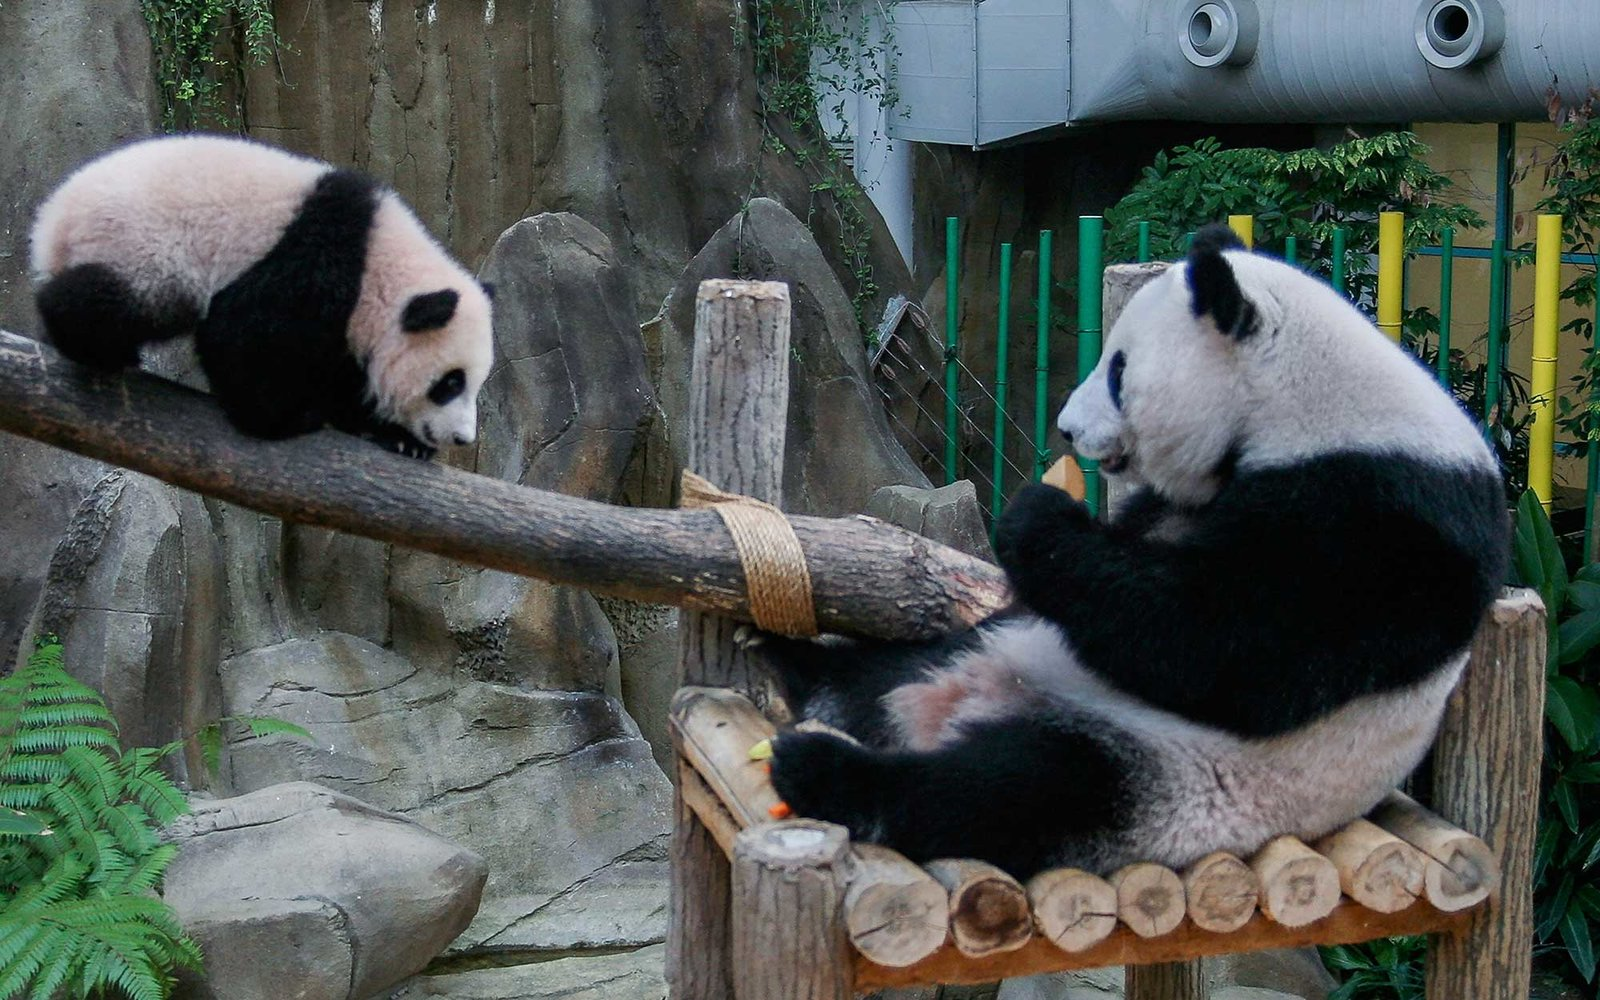 KUALA LUMPUR, MALAYSIA - APRIL 07:  Nuan Nuan, an eight month Panda cub born on August 1, 2015, plays near it's mother, Liang Liang, during the announcement of its name at the National Zoo on April 7, 2016 in Kuala Lumpur, Malaysia. Natural Resources and